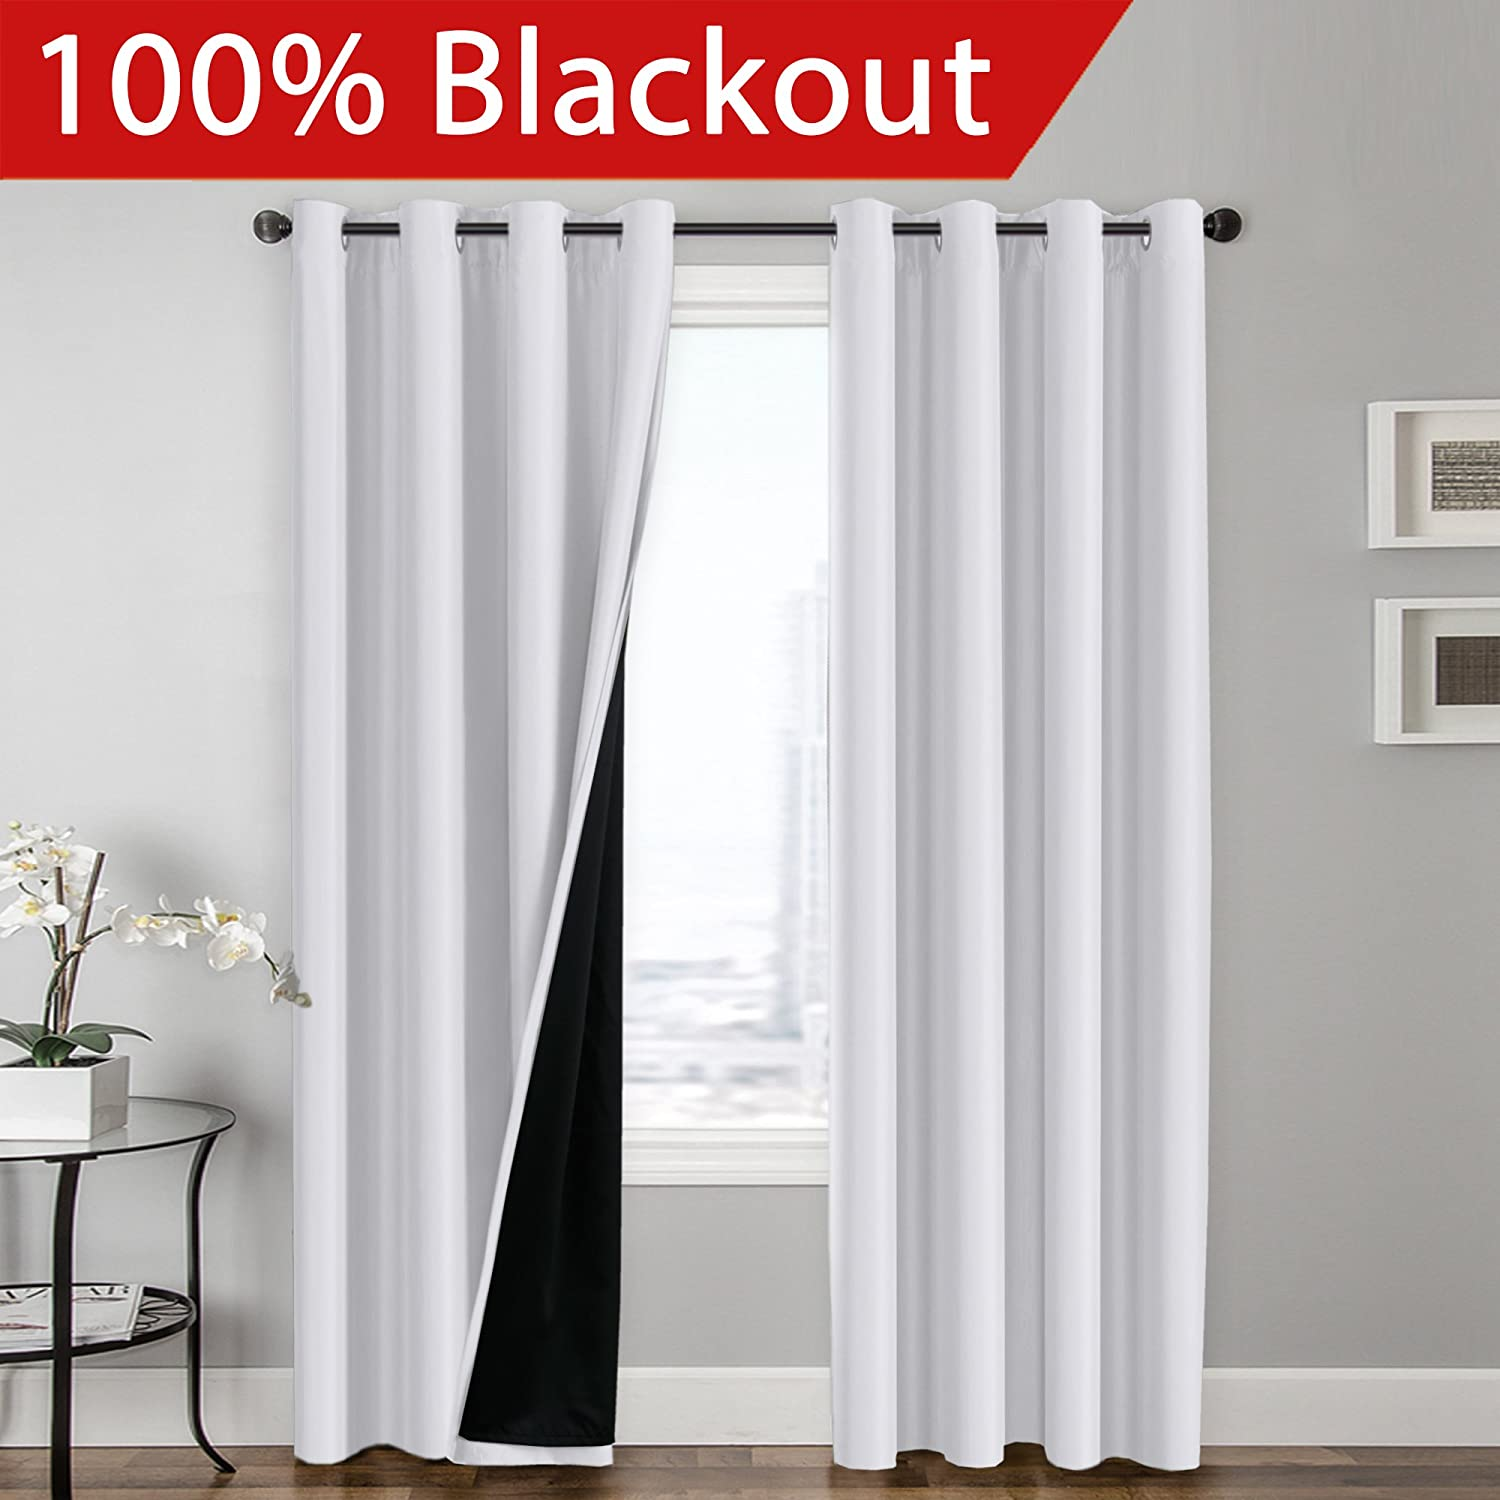 FlamingoP Blackout White Curtains Faux Silk Satin with Black Liner Thermal Insulated Window Treatment Panels